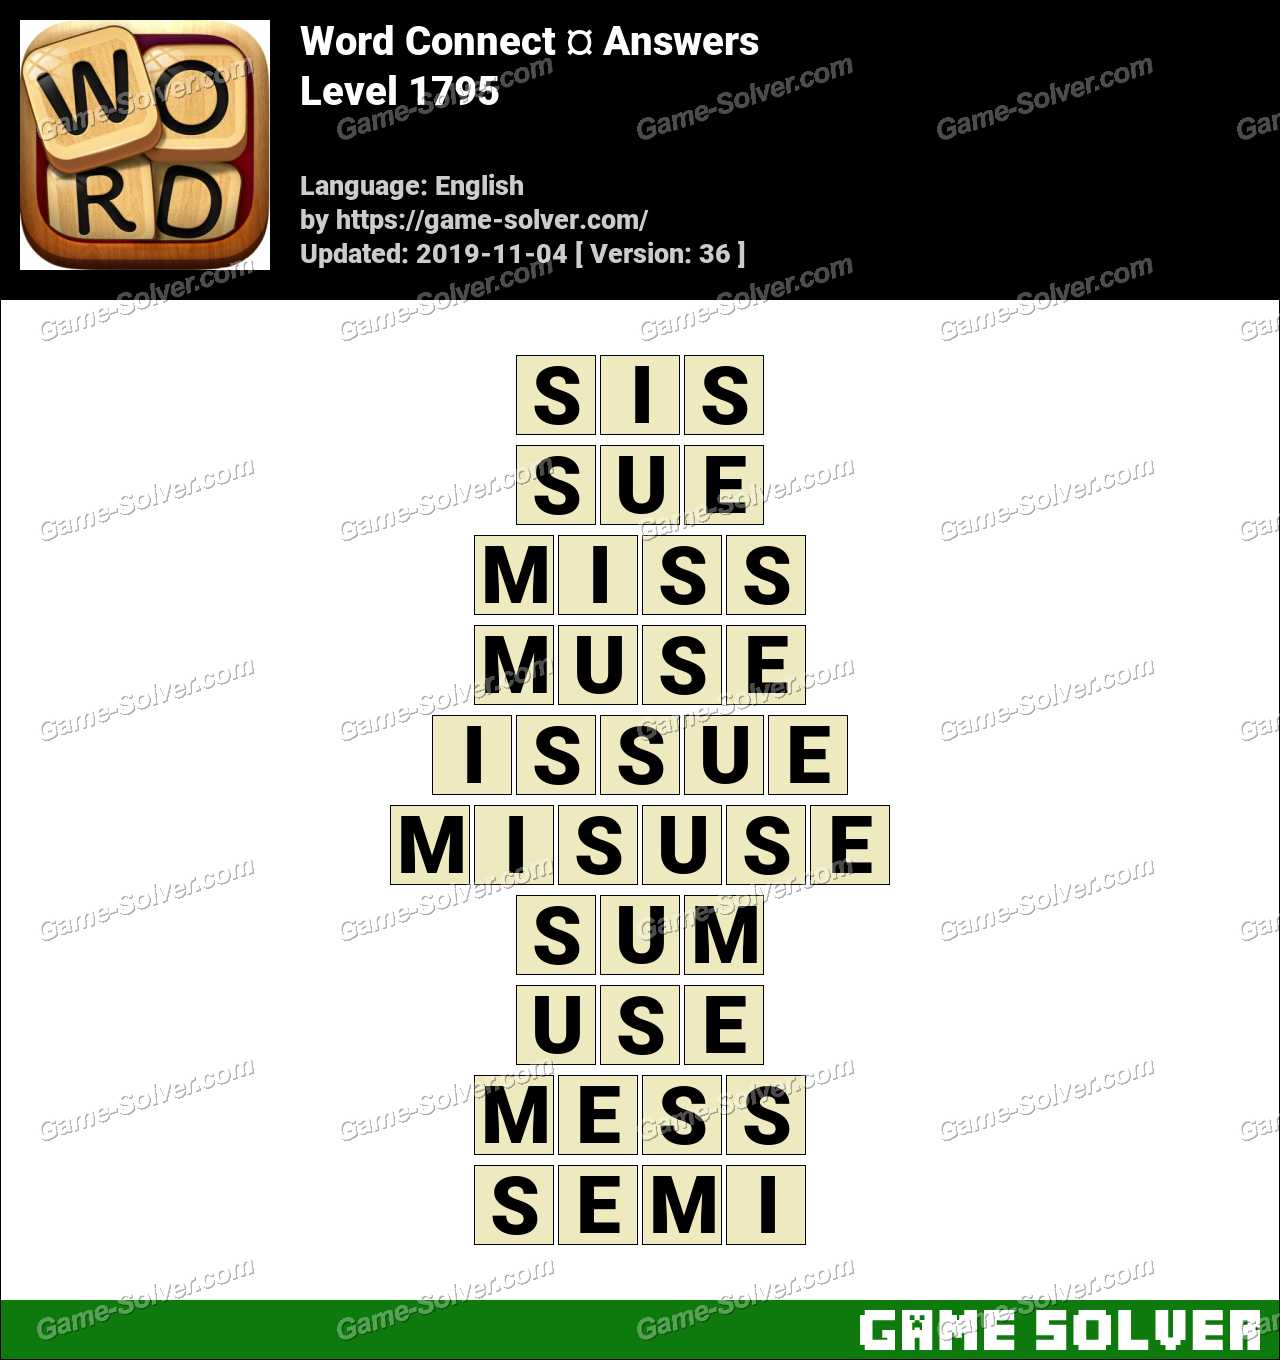 Word Connect Level 1795 Answers